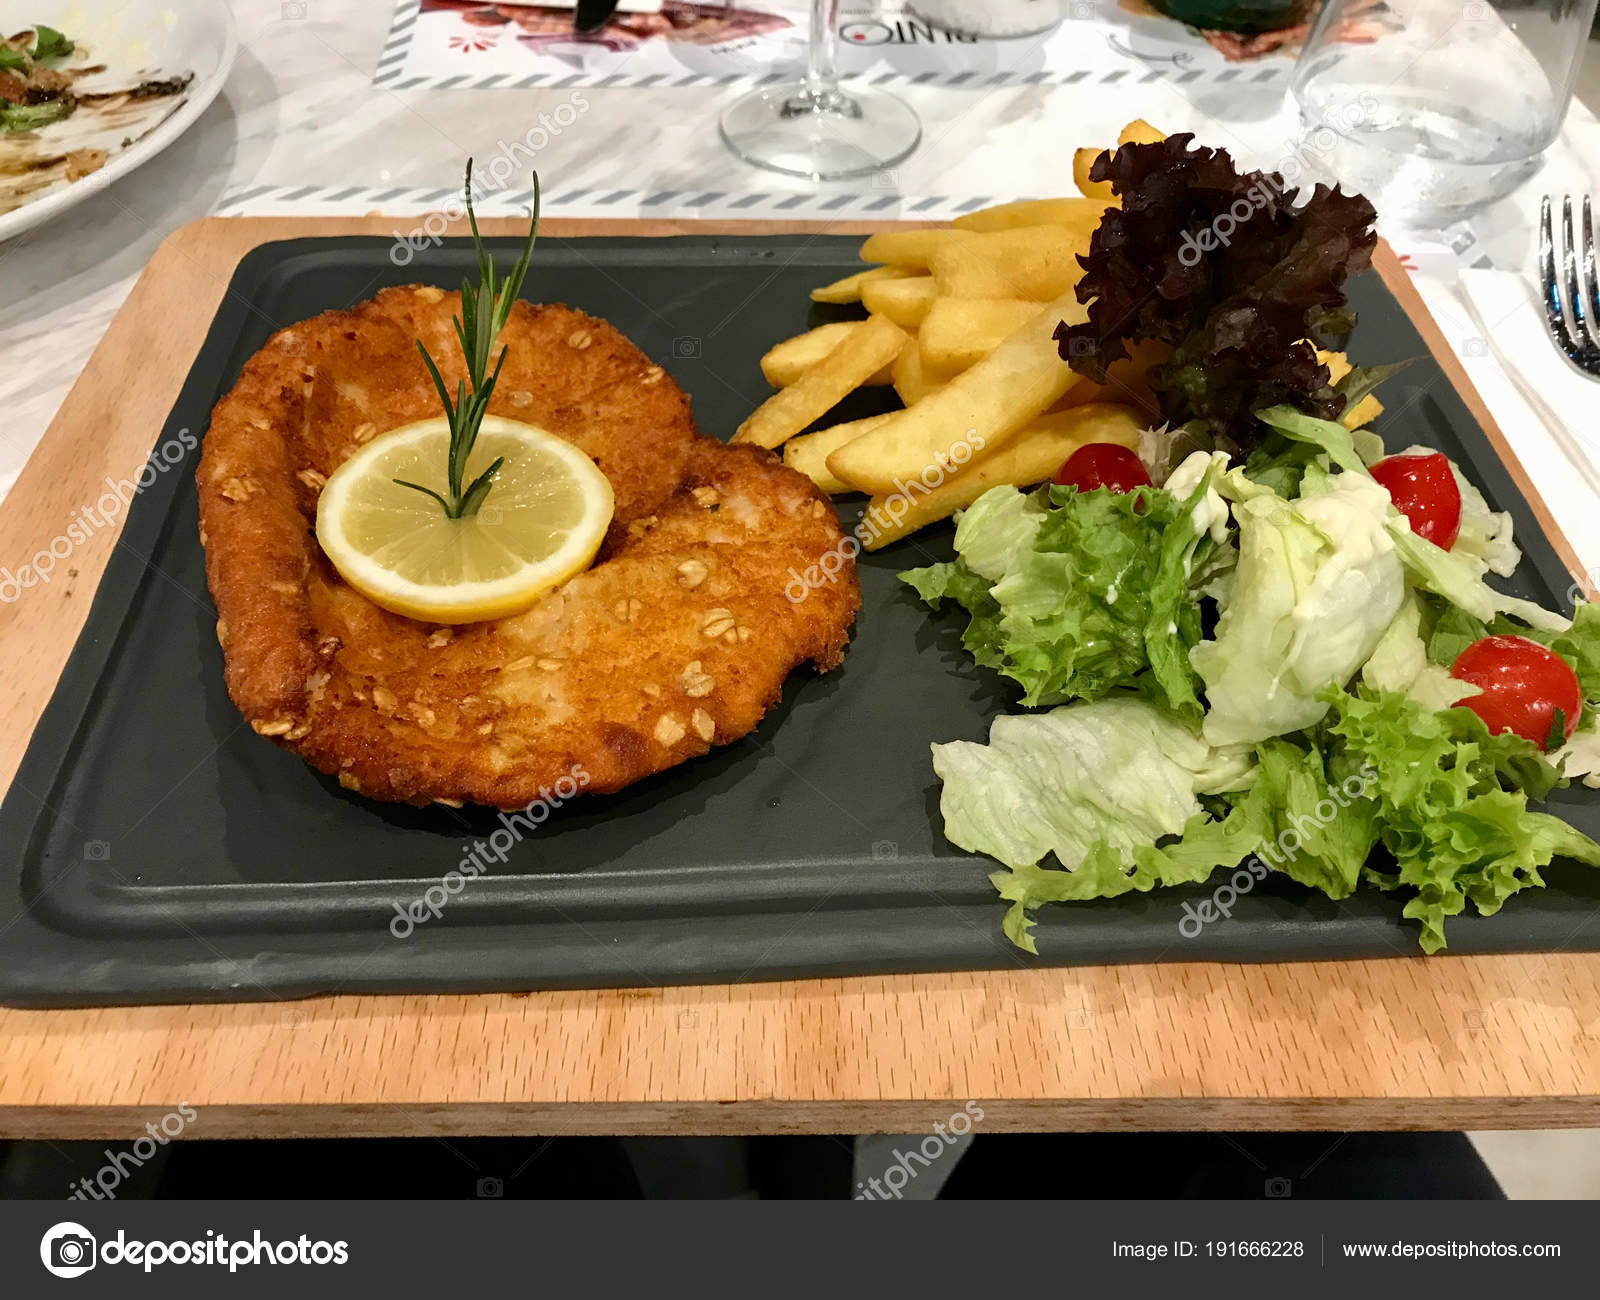 Schnitzel Restaurant Chicken Schnitzel With Lemon Salad And Potatoes Served At